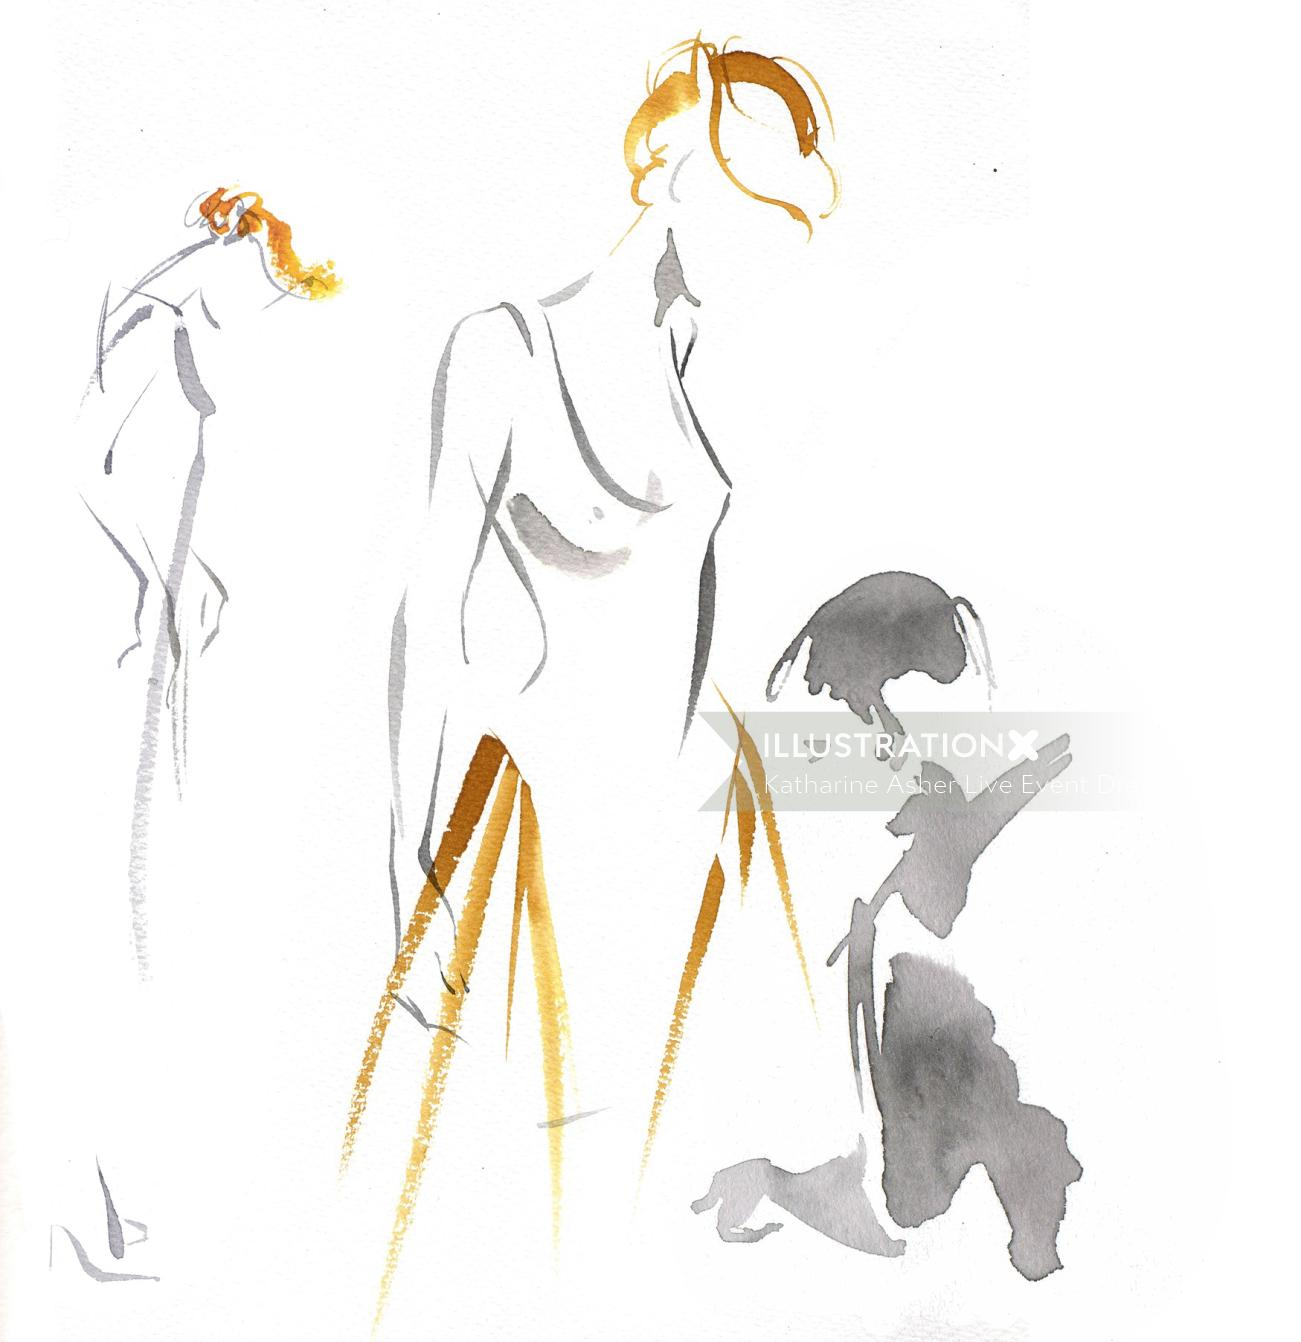 Illustration of Behind the Catwalk - Mishy May 'Pastel Bridal' couture